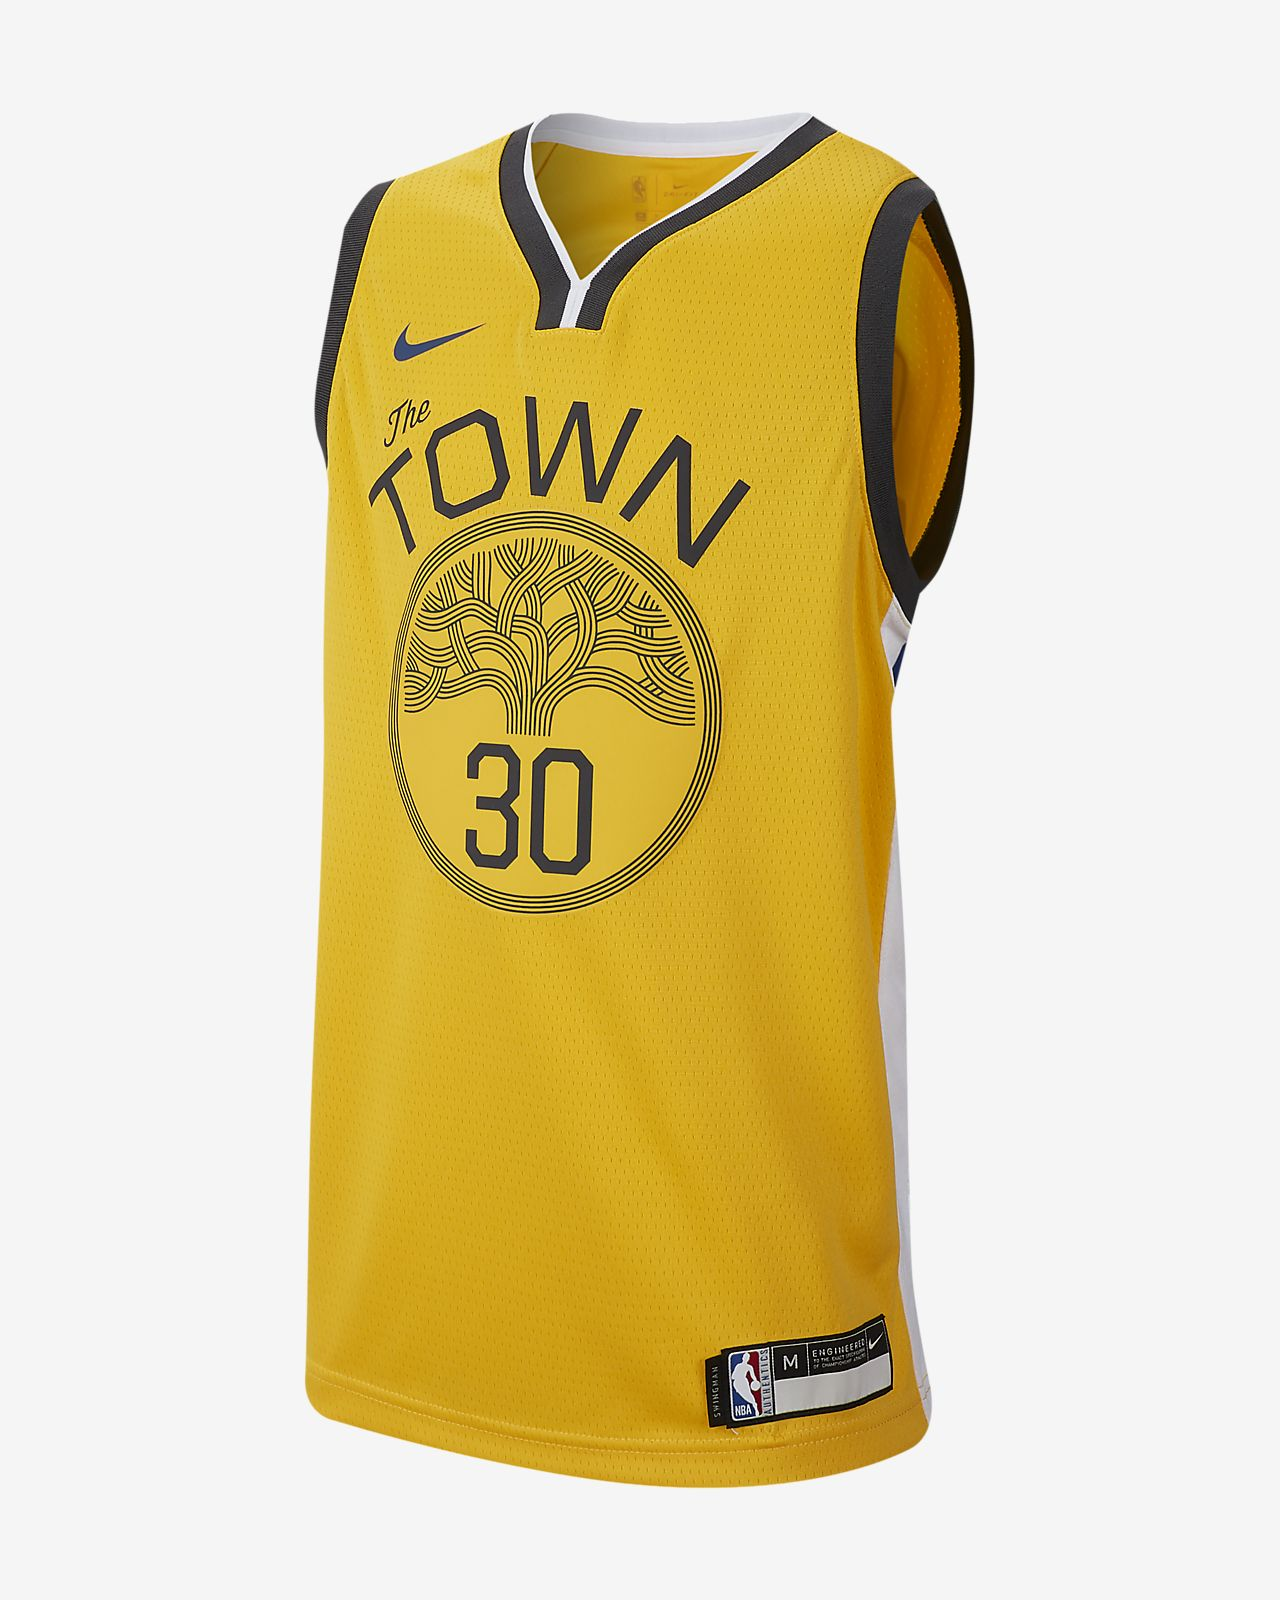 Big Kids  Nike NBA Jersey. Stephen Curry Earned Statement Edition Swingman (Golden  State Warriors) e02f6f4b7